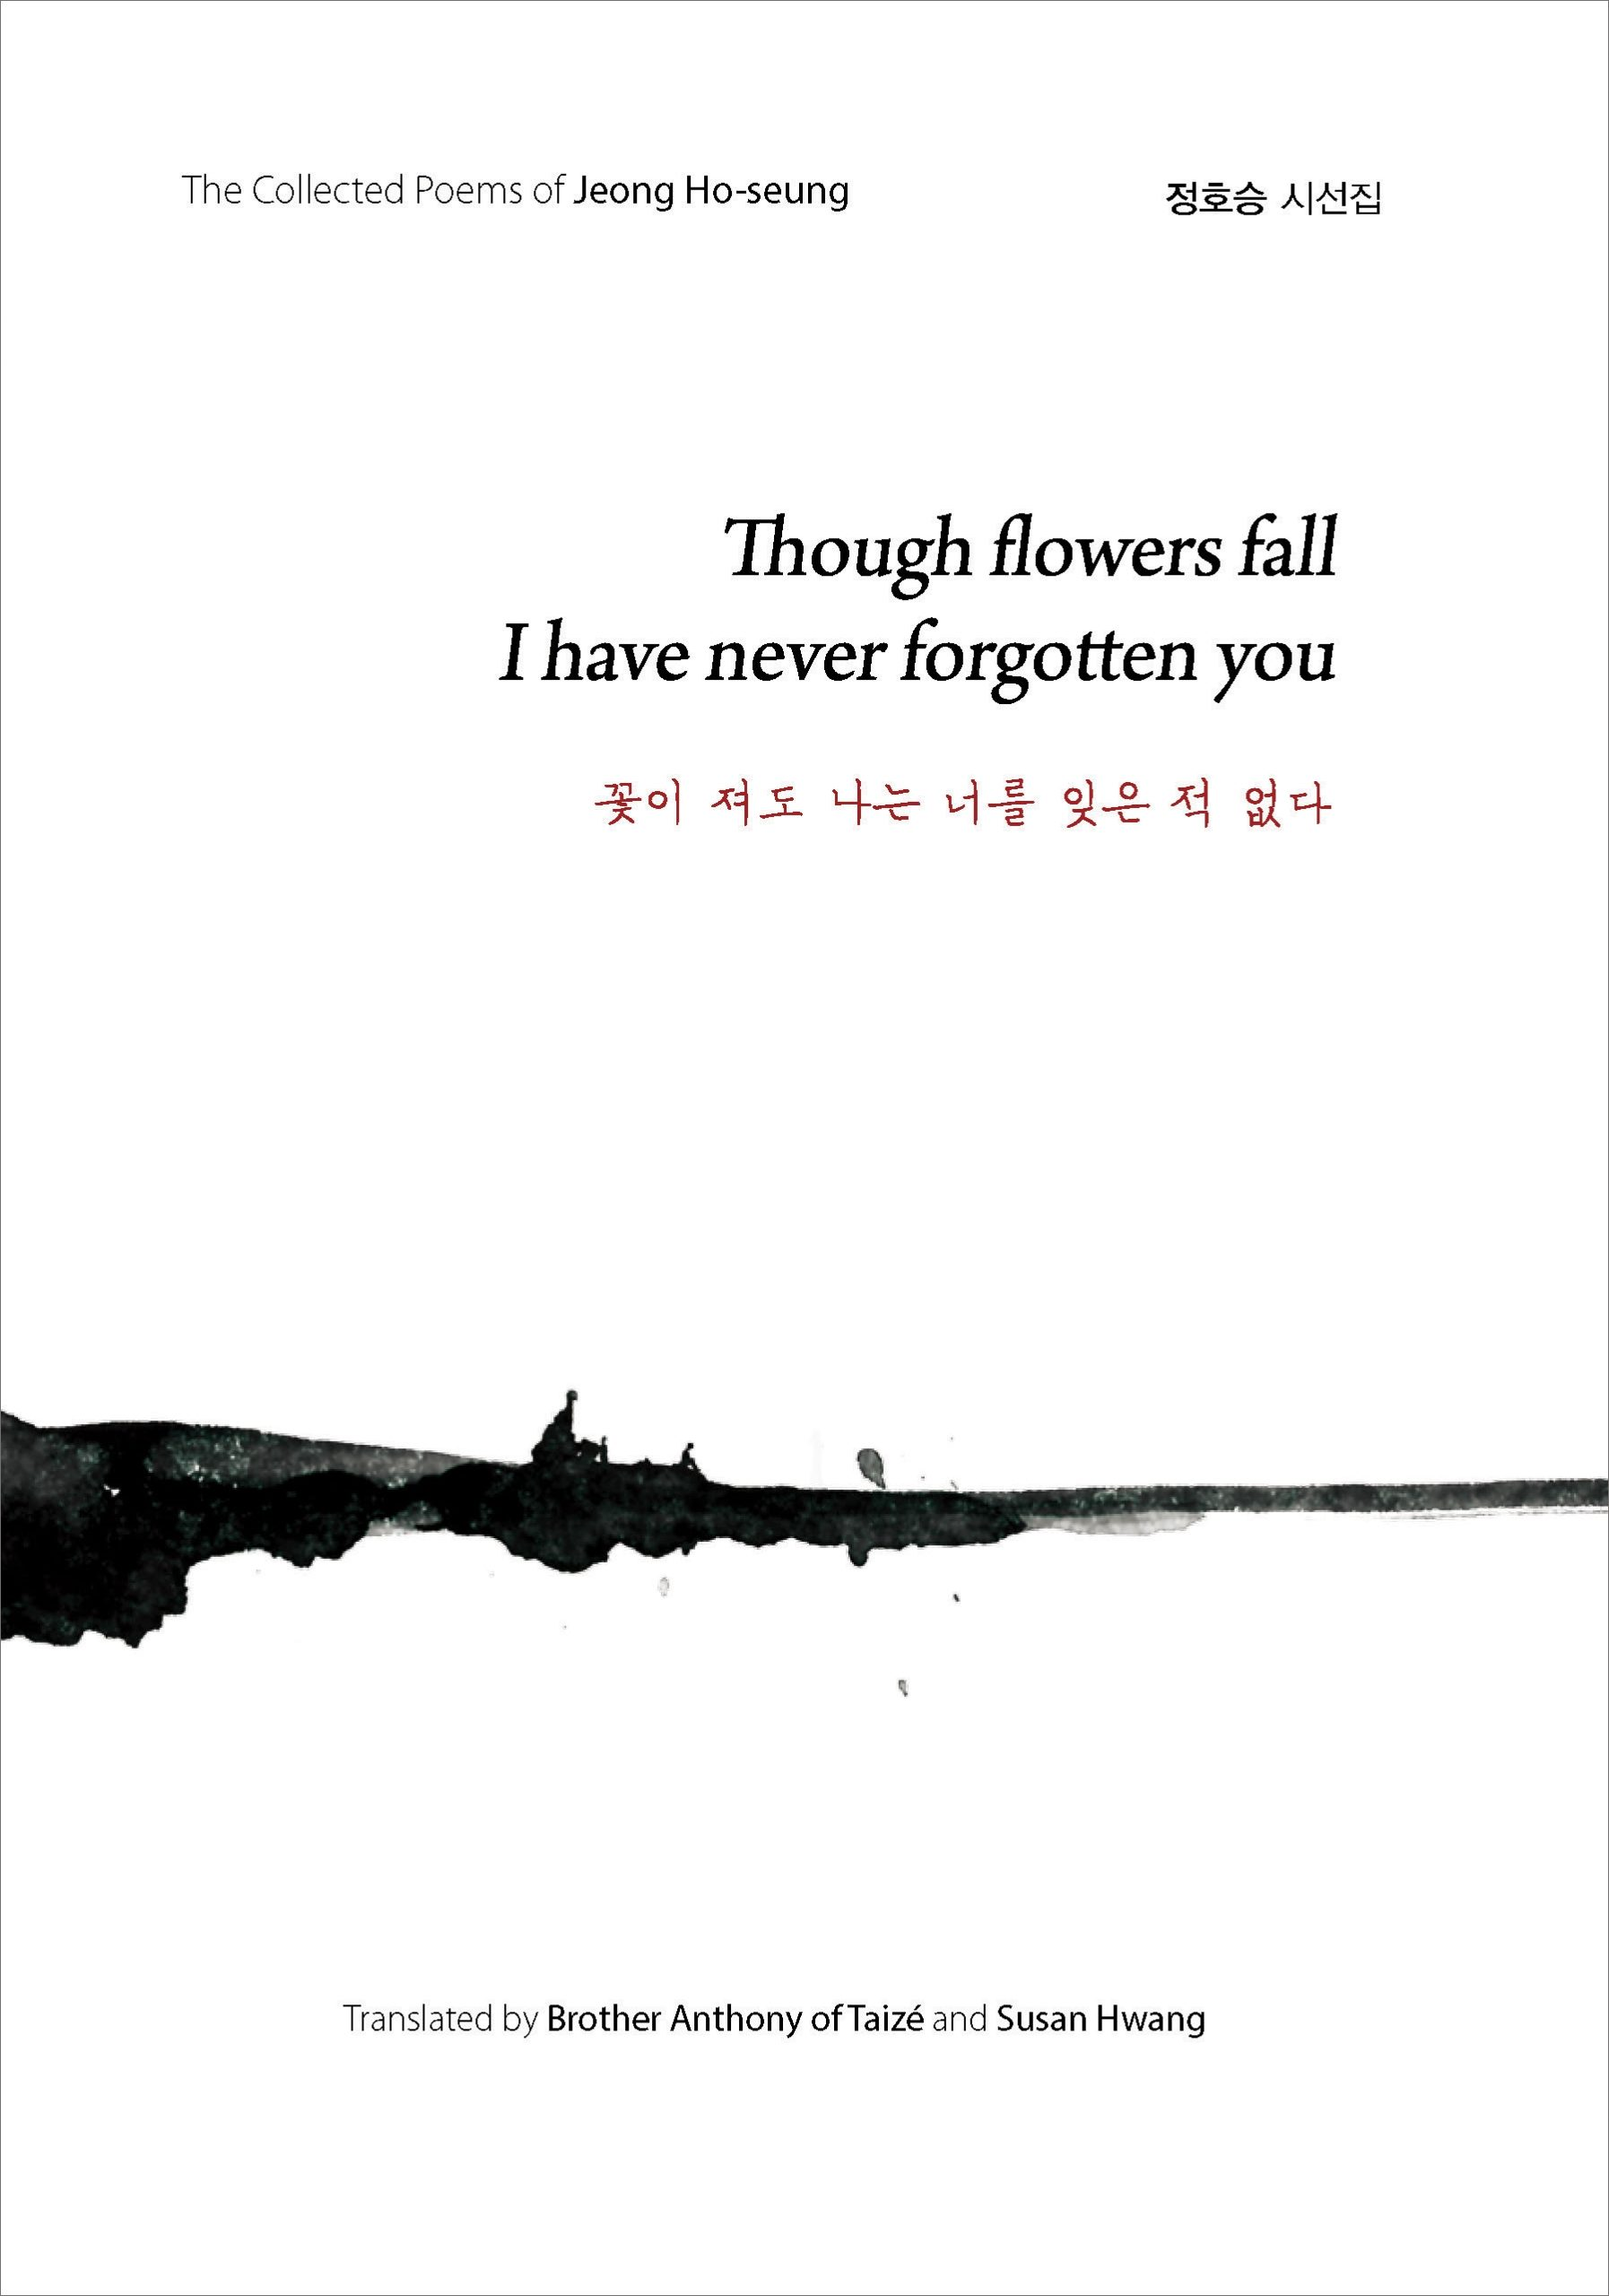 Though flowers fall I have never forgotten you